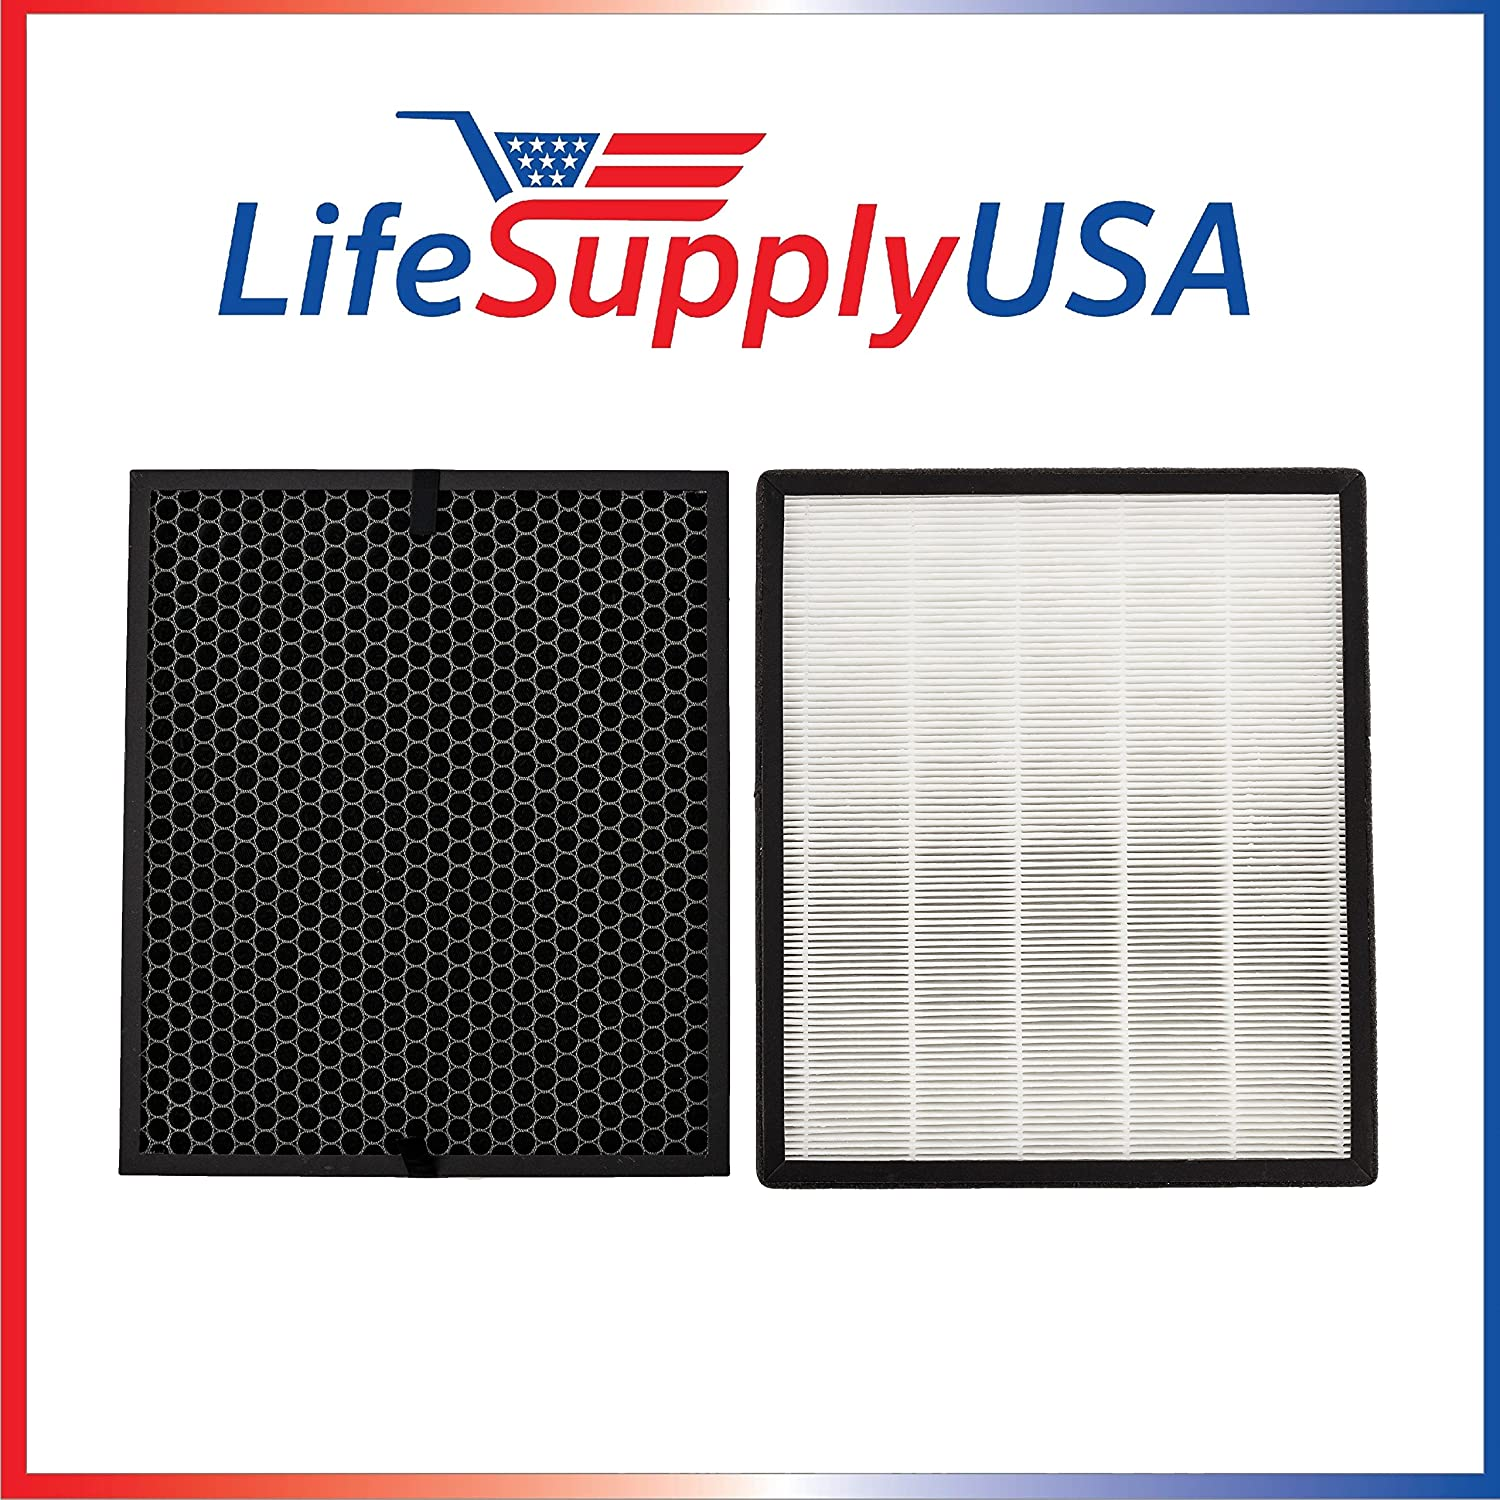 LifeSupplyUSA 10 Replacement Filter Sets Compatible with Levoit Air Purifier LV-PUR131, LV-PUR131-RF True HEPA & Activated Carbon Filters Set (10)